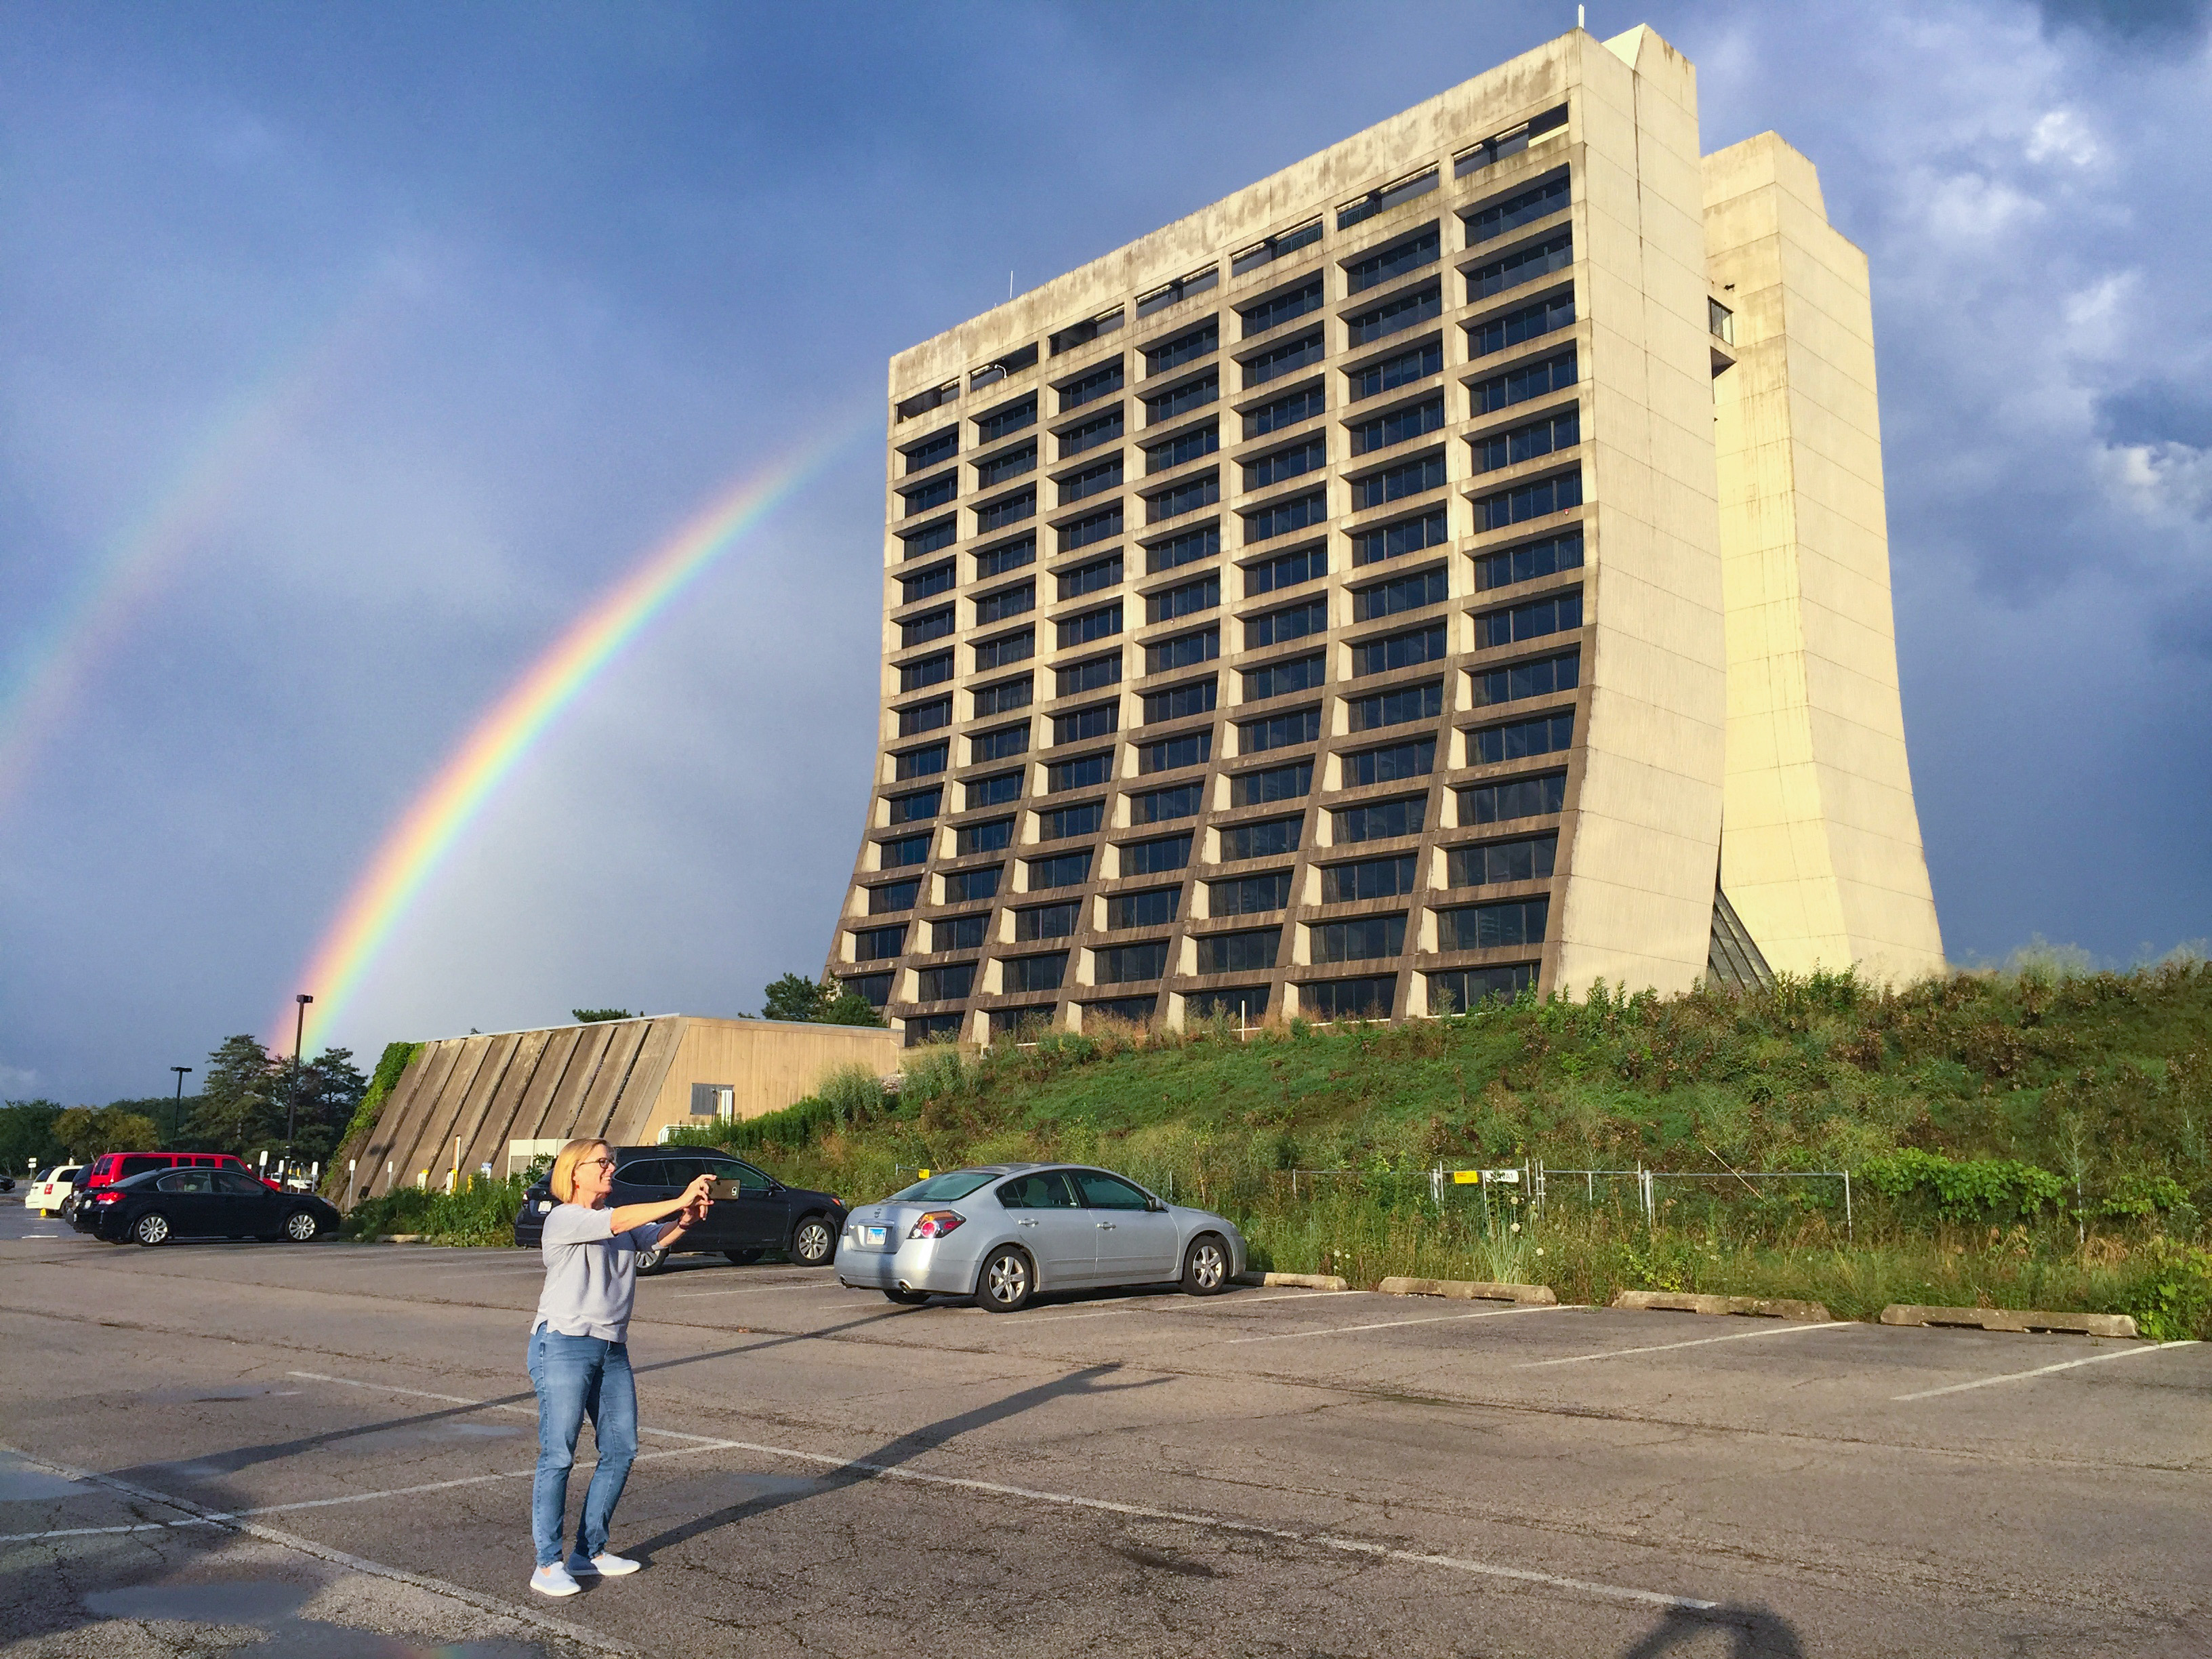 (5/5) Catherine Buck from Procurement pauses to take a selfie a double rainbow and Wilson Hall on Tuesday evening Aug. 13. nature, landscape, sky, rainbow, building, people, Wilson Hall Photo: Reidar Hahn